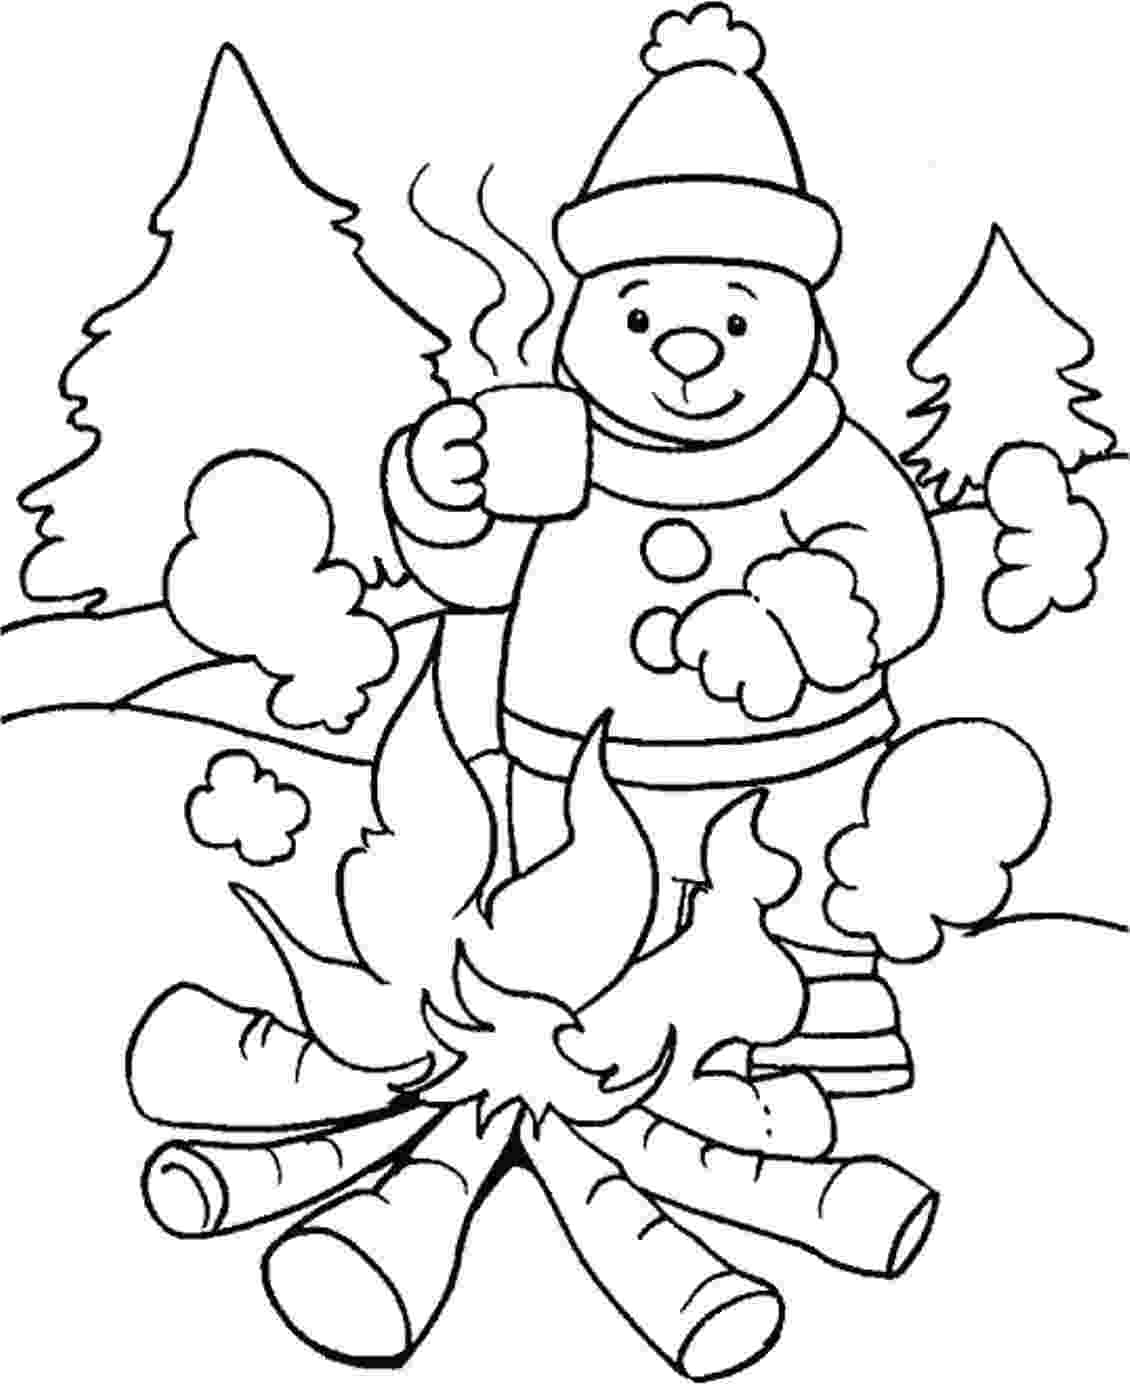 seasons coloring pages 4 seasons free to color for children 4 seasons kids seasons coloring pages